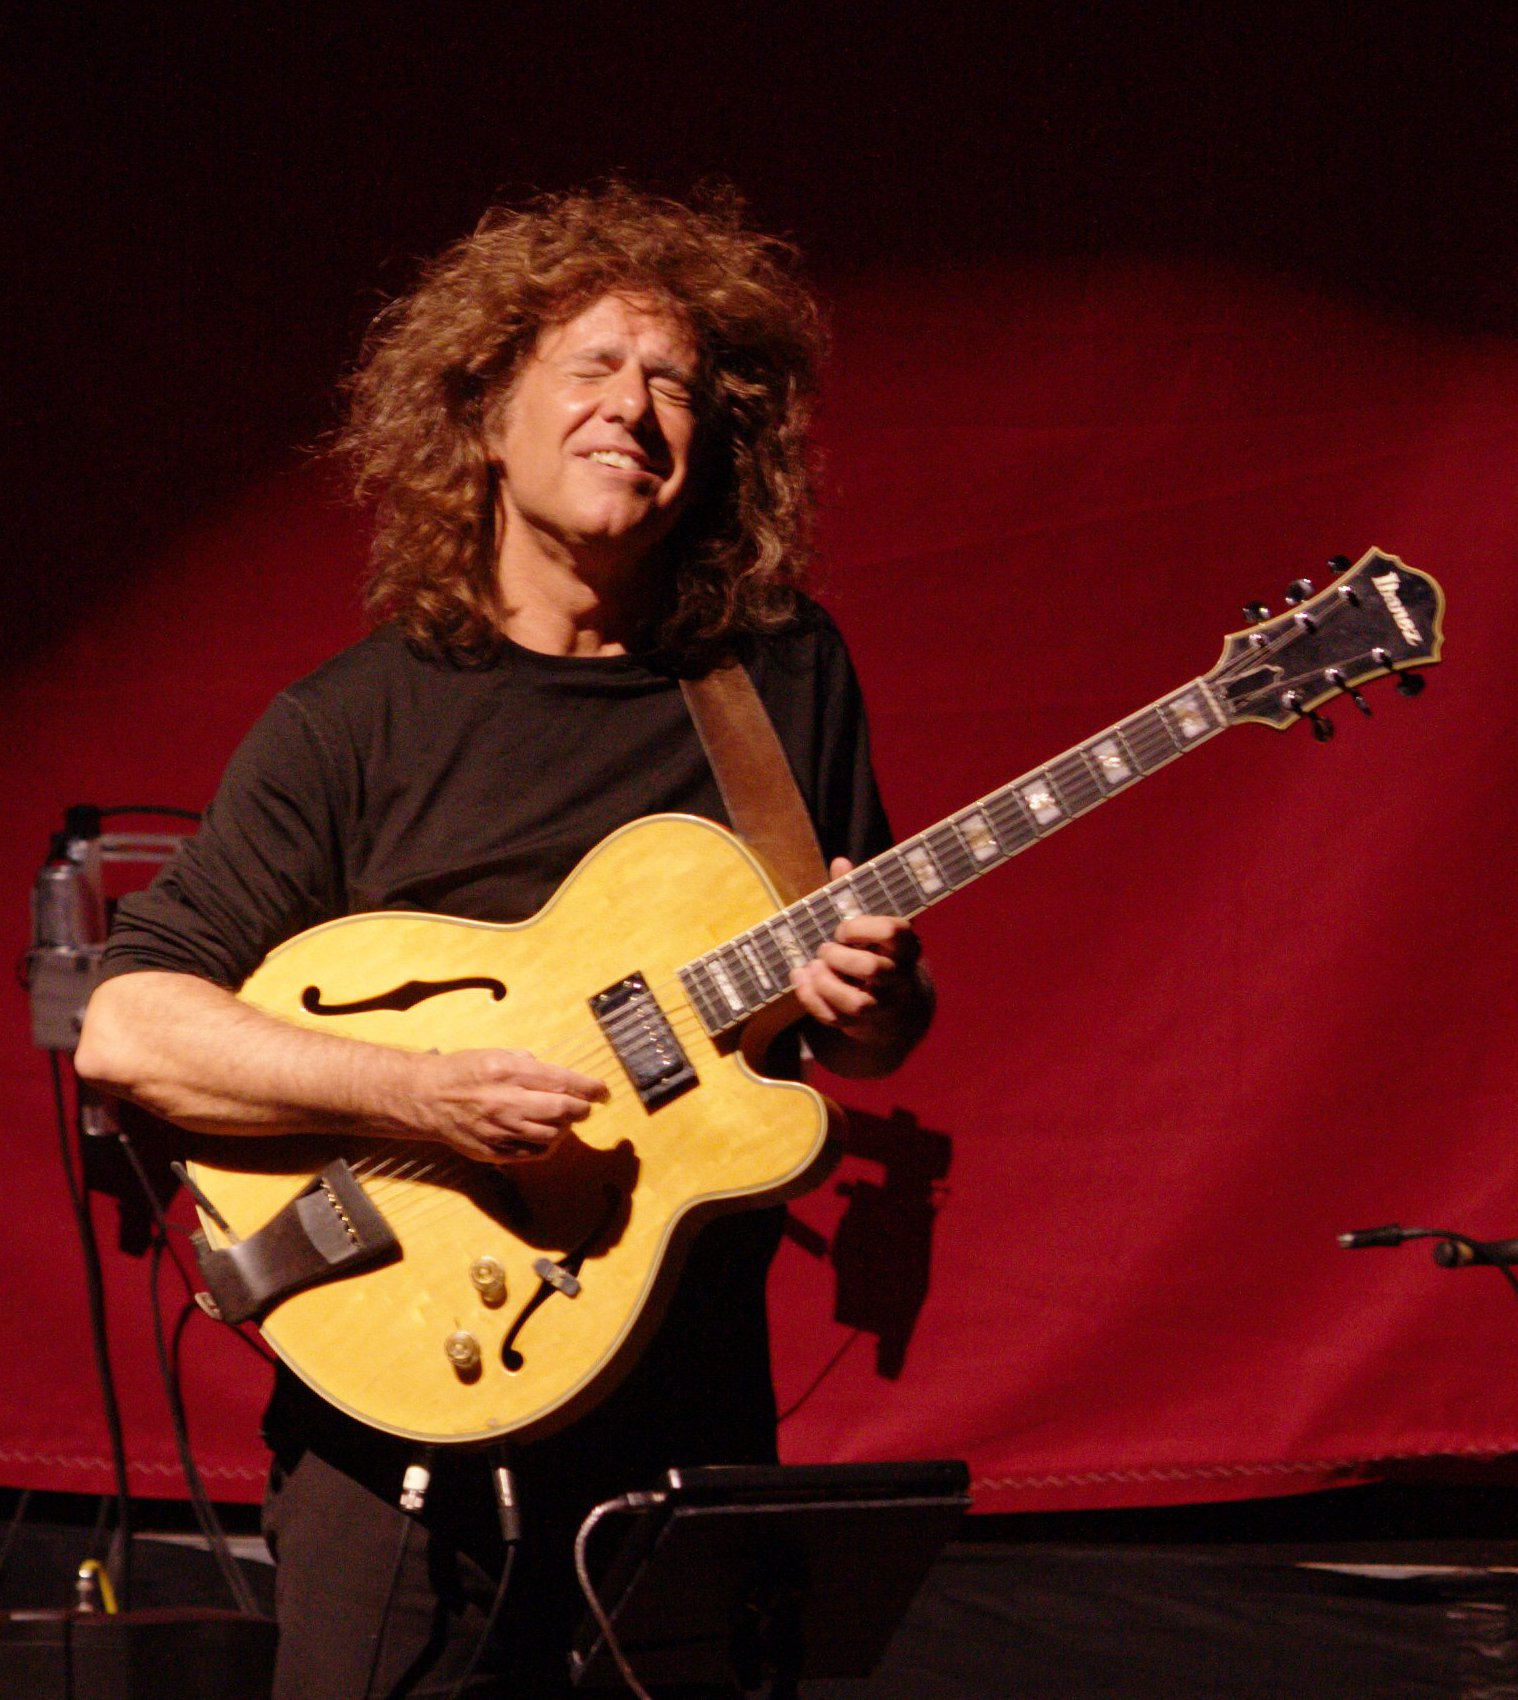 1568941311Pat_metheny_orch2.jpg